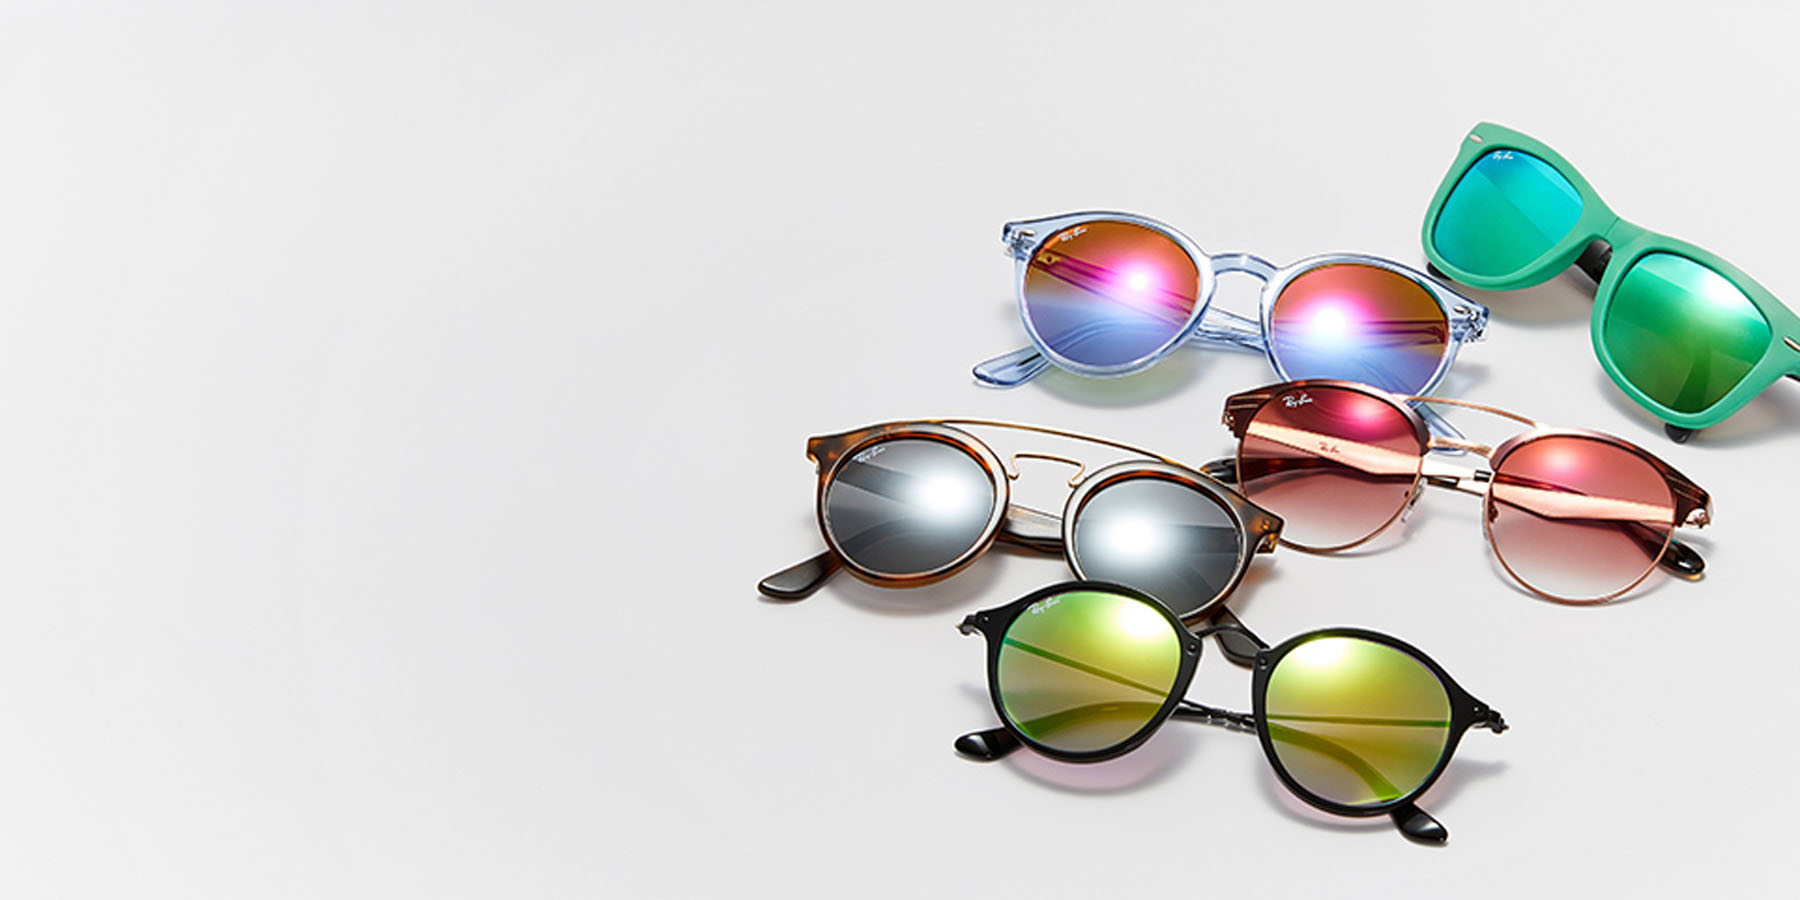 Ray-Ban sunglasses for men & women are up to 65% off at Nordstrom Rack from $60